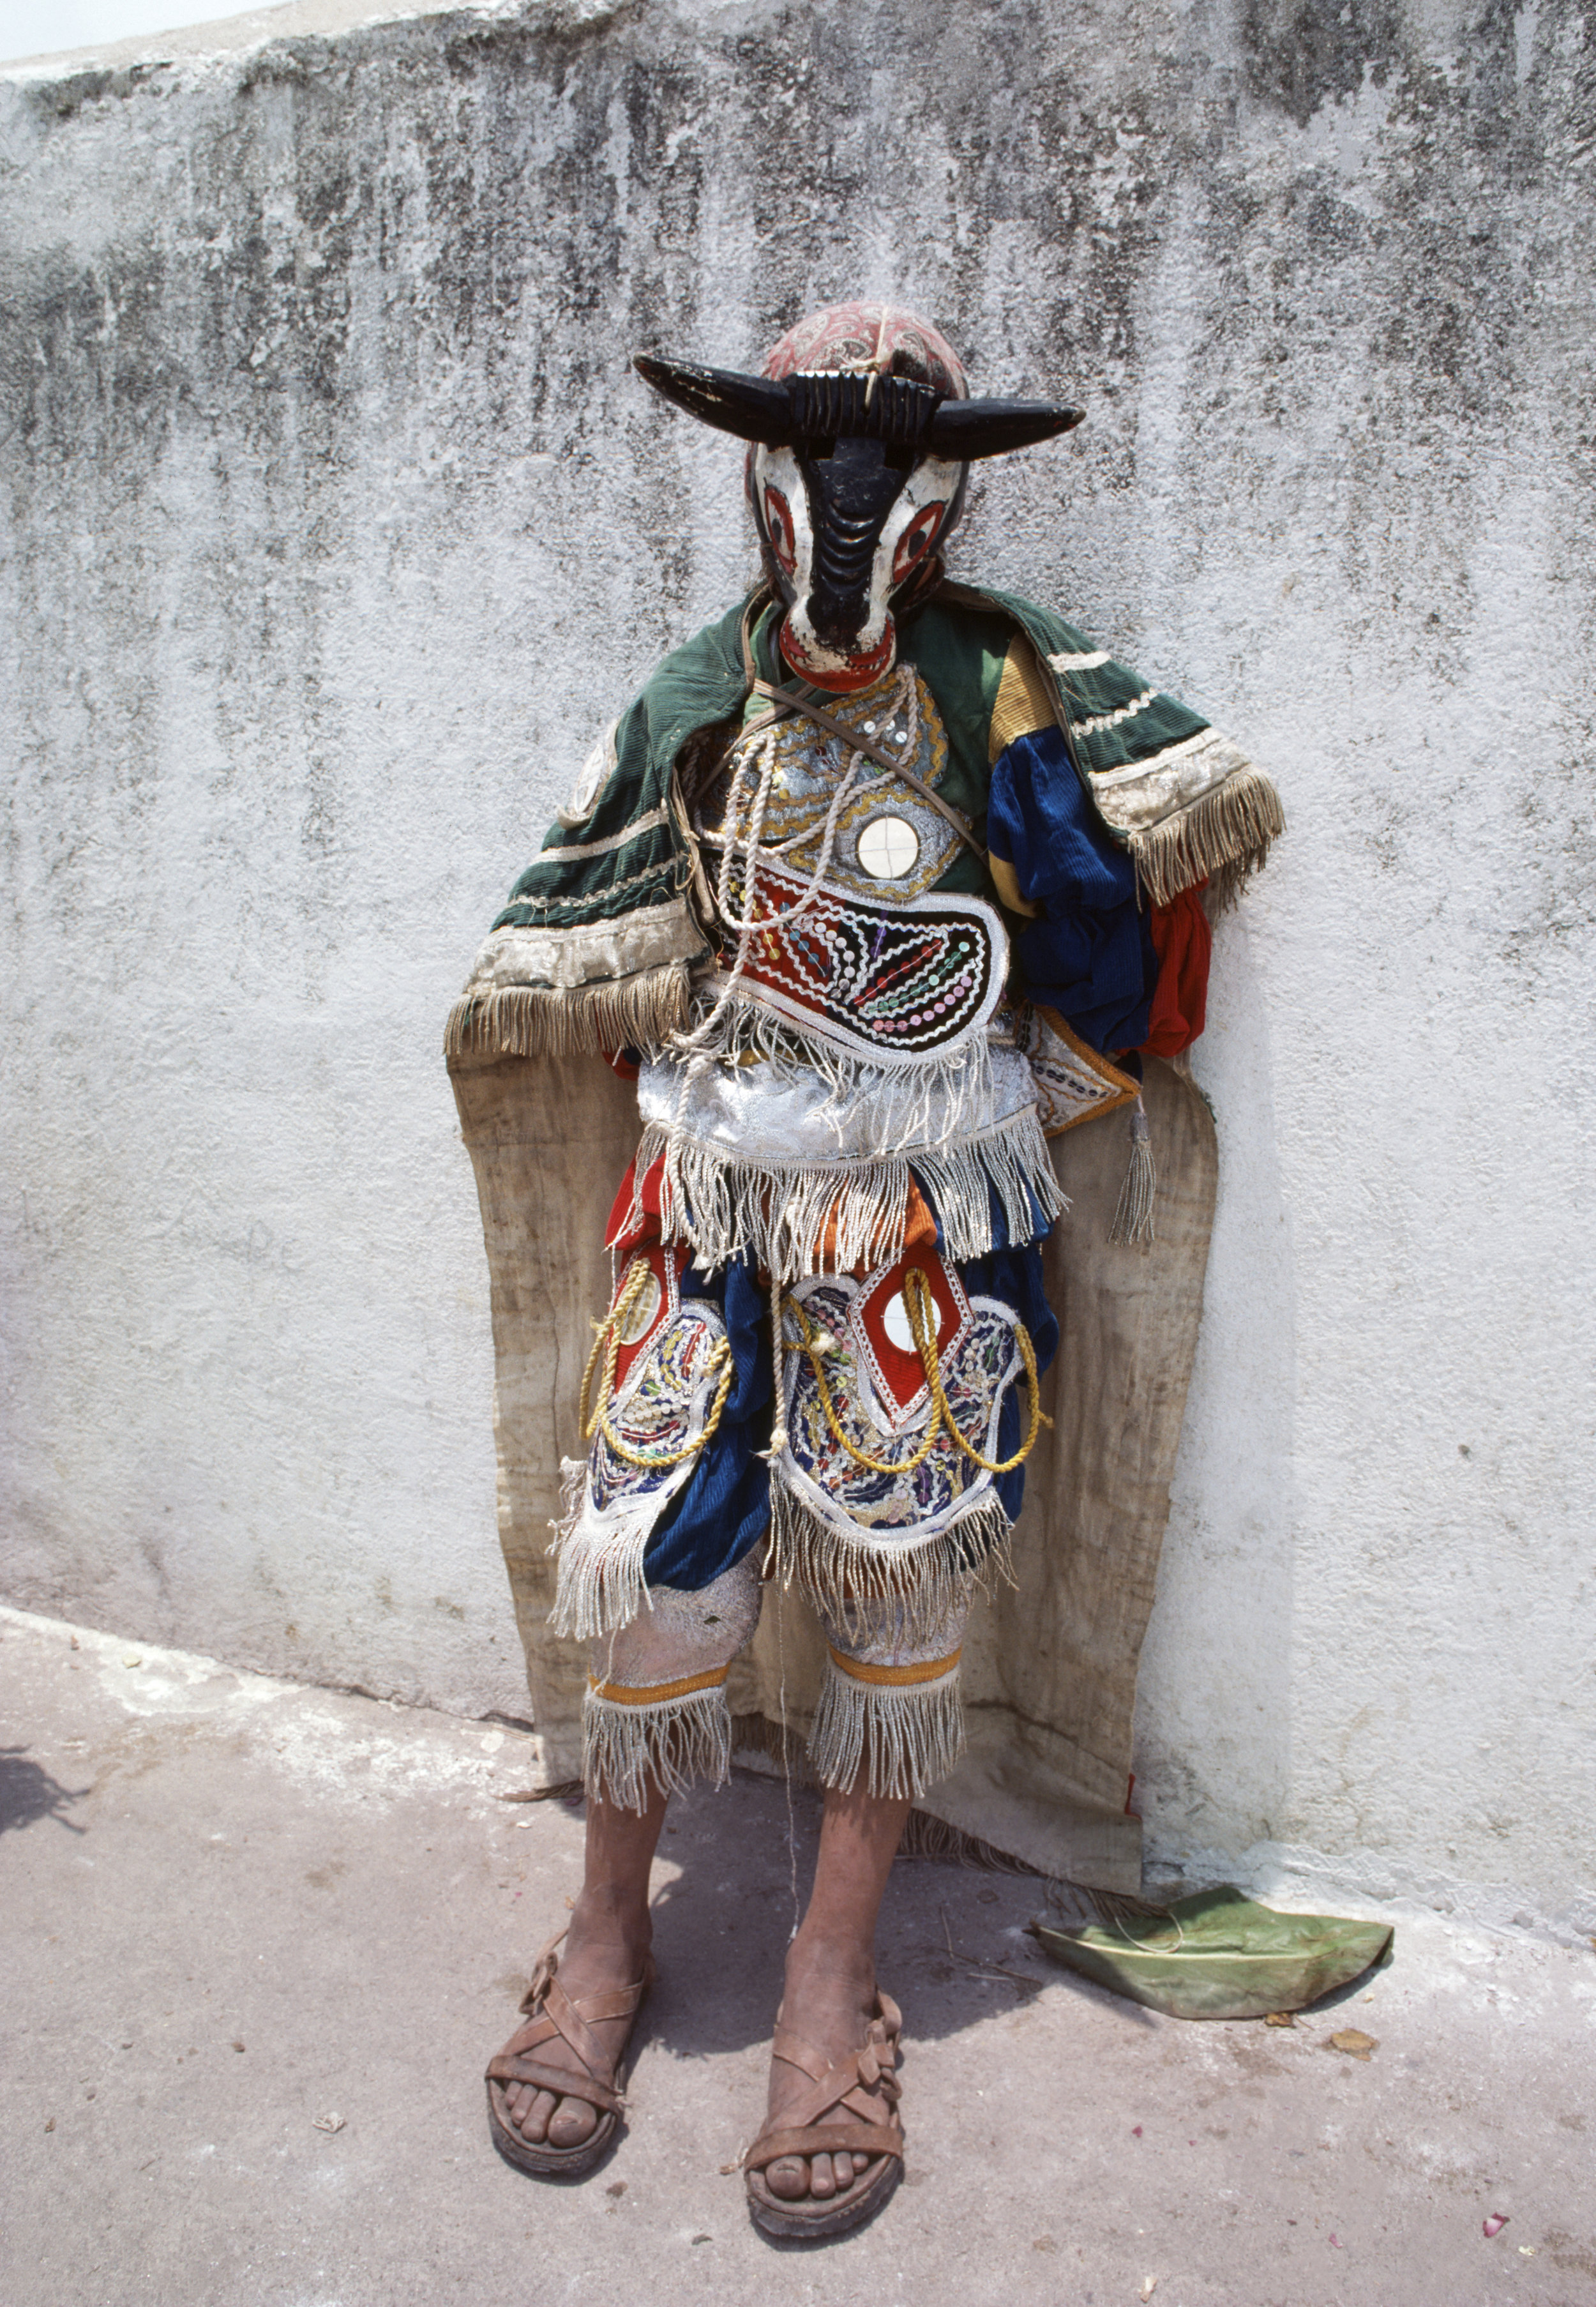 A Guatemalan man with a face mask of a bull stands against a wall during a festival near the Roman Catholic church of Santo Tomás in Chichicastenango, Guatemala, May 1, 1982.